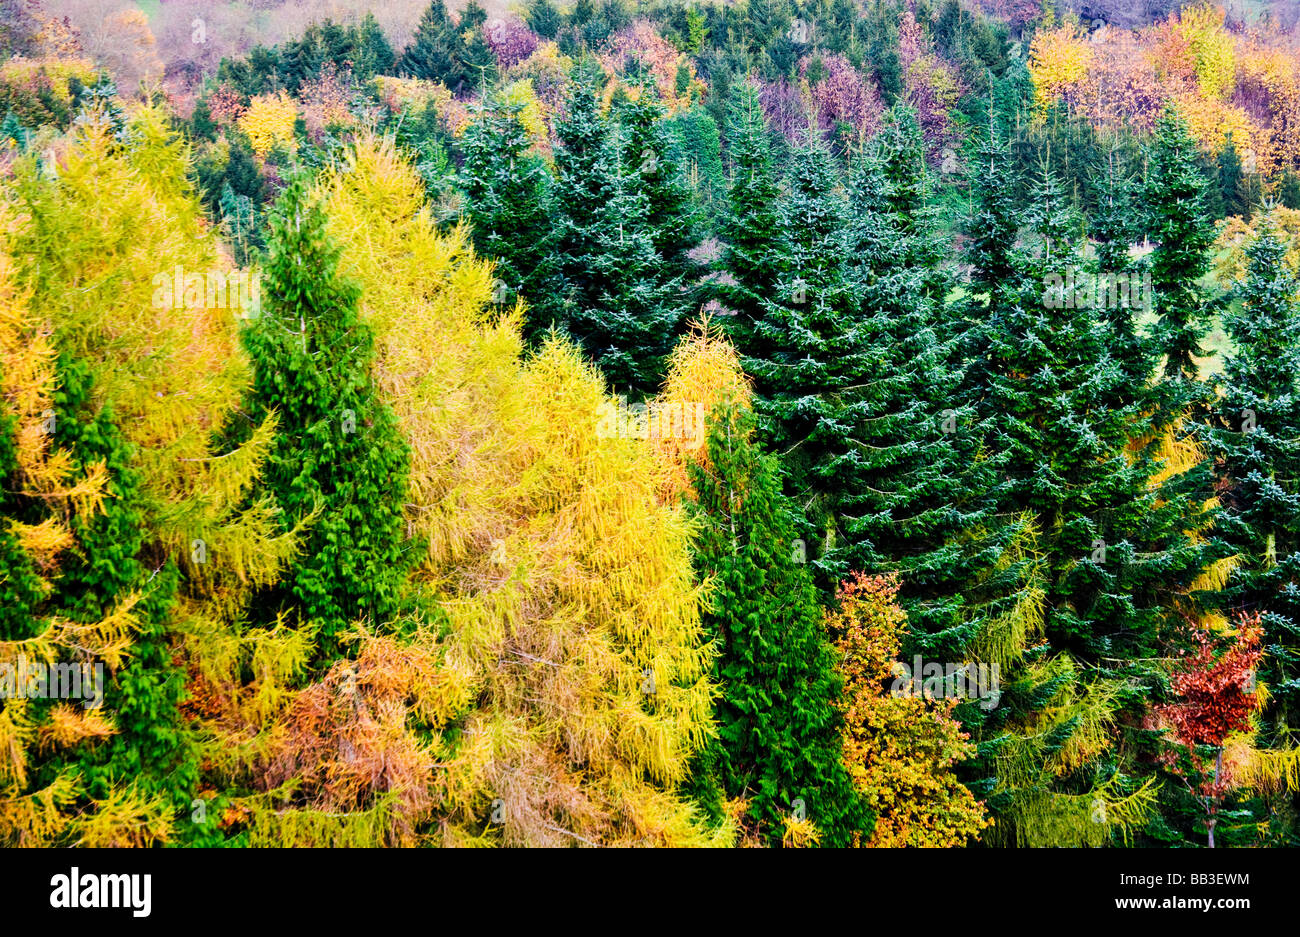 Autumn colours in a conifer forest in England UK - Stock Image